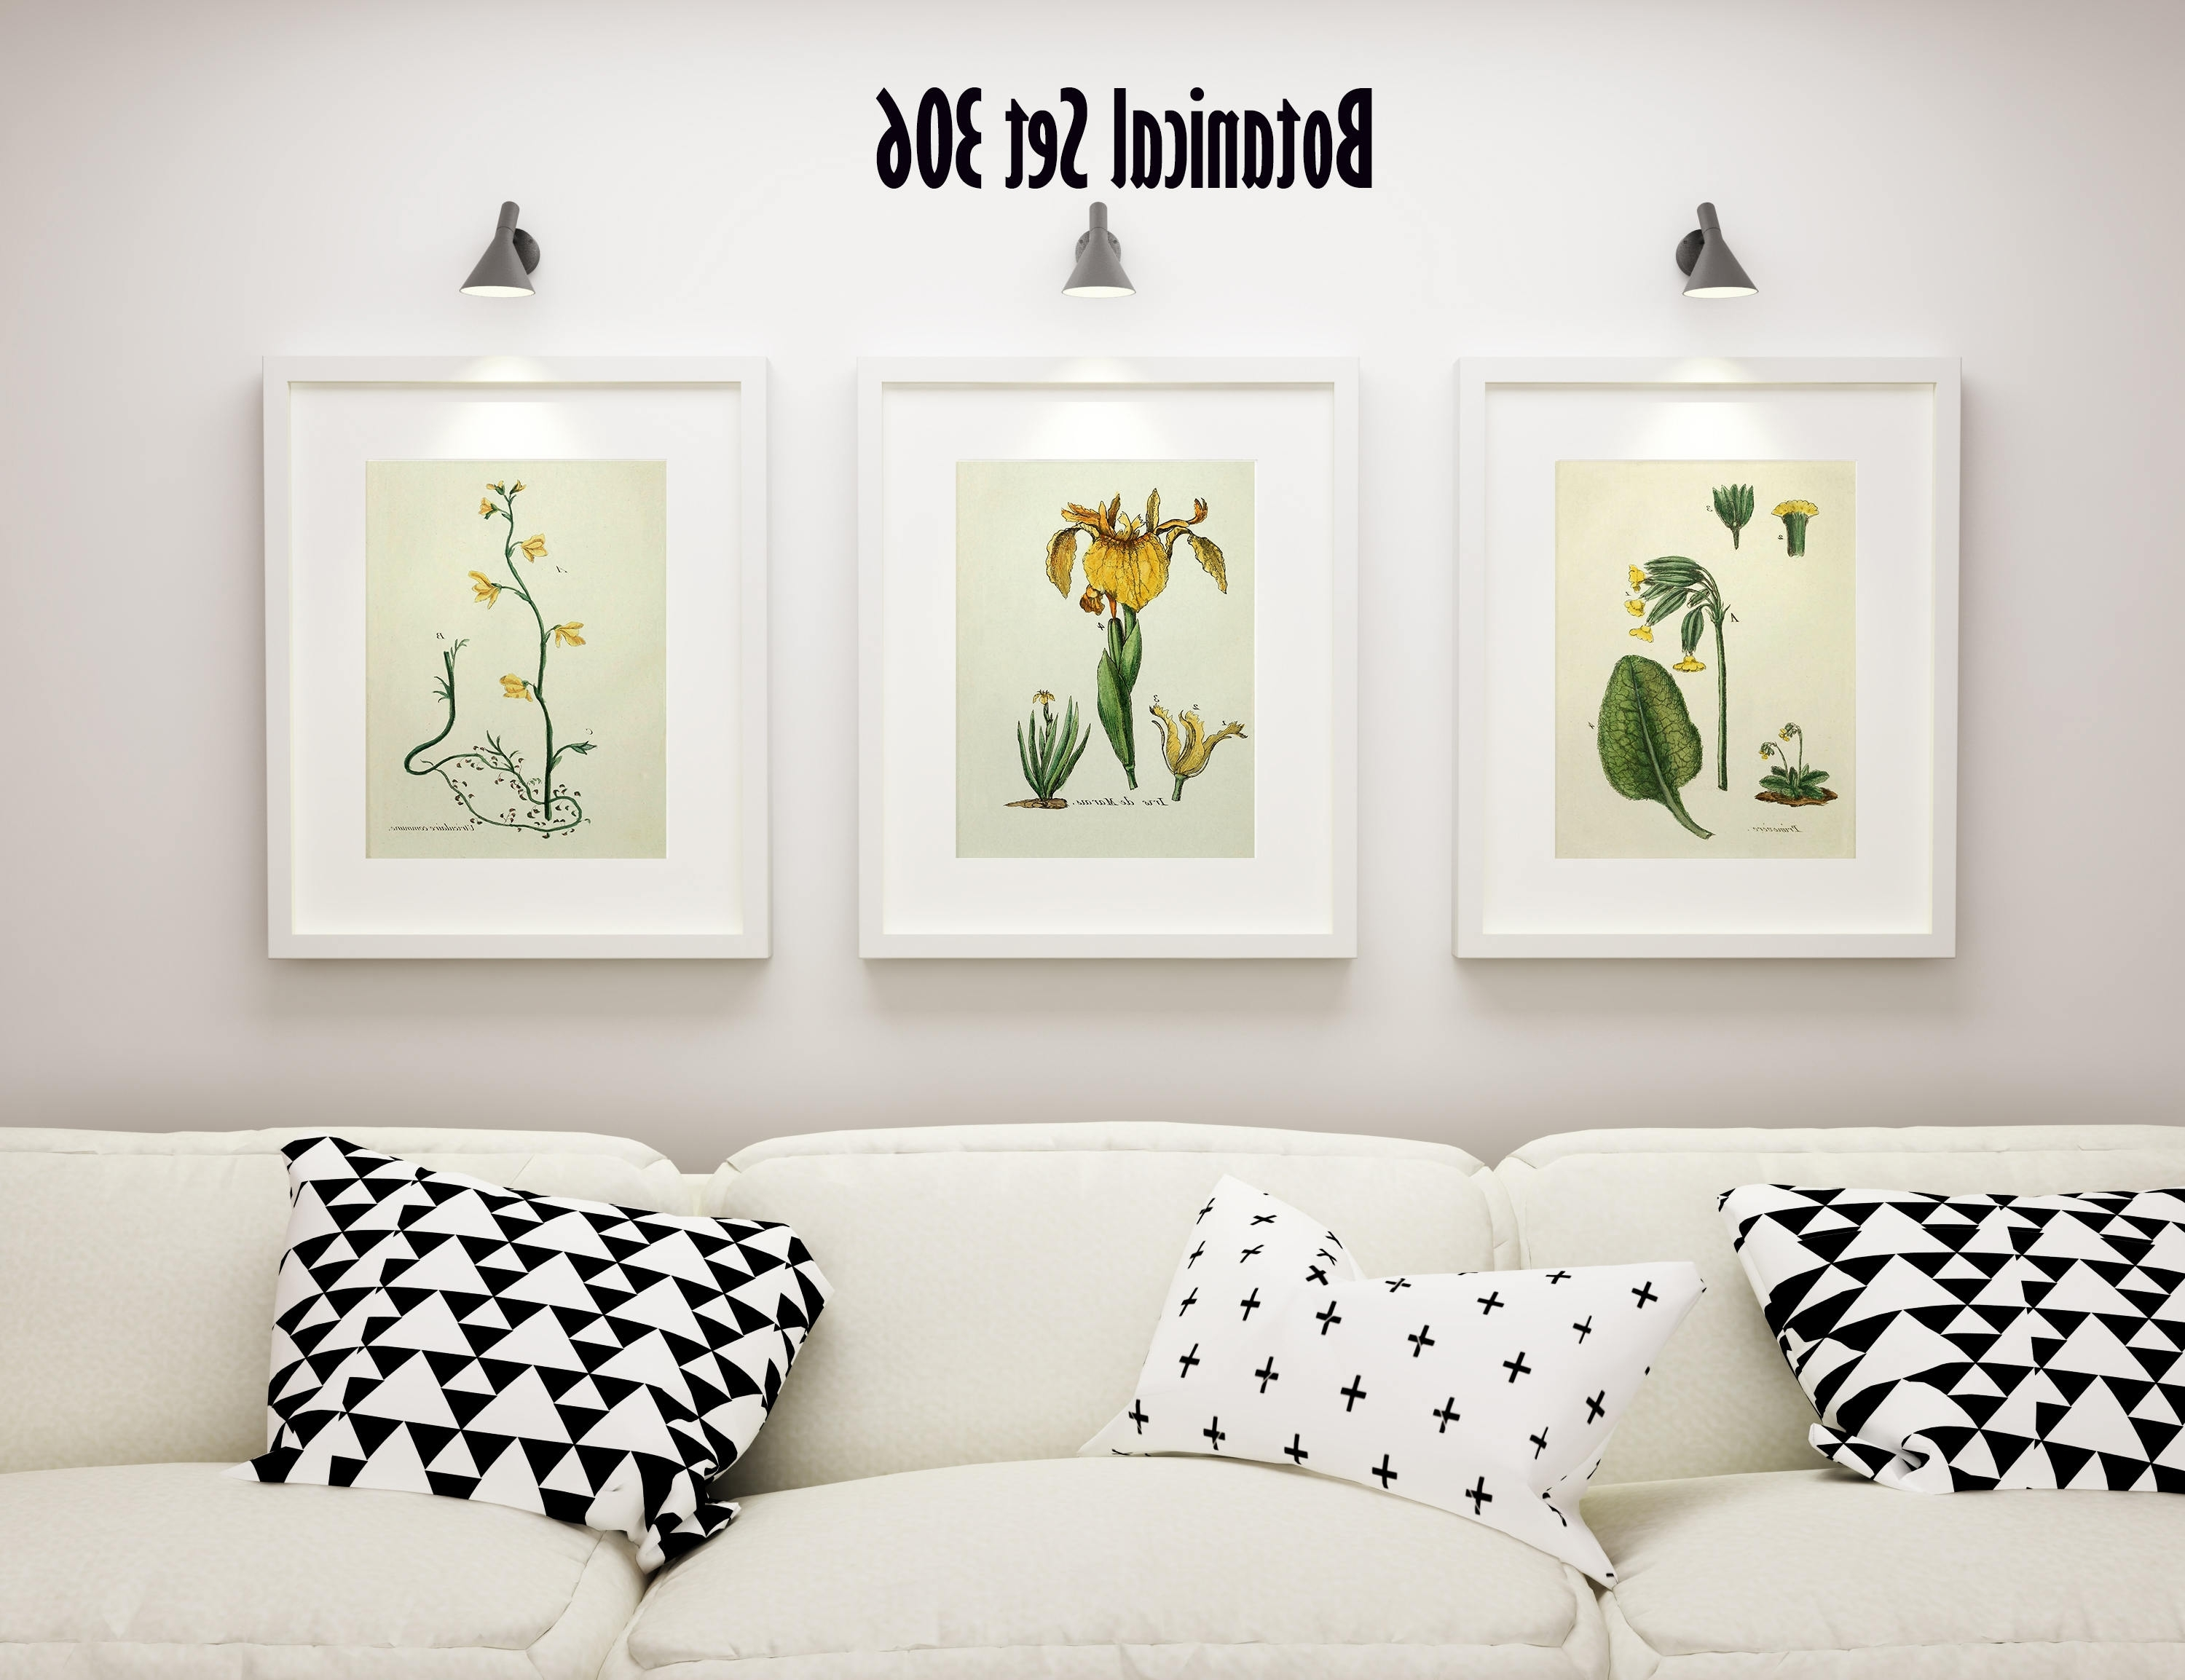 3 Vintage Floral Prints – Matted And Framed – Yellow Floral Prints Inside Popular French Country Wall Art Prints (Gallery 3 of 15)